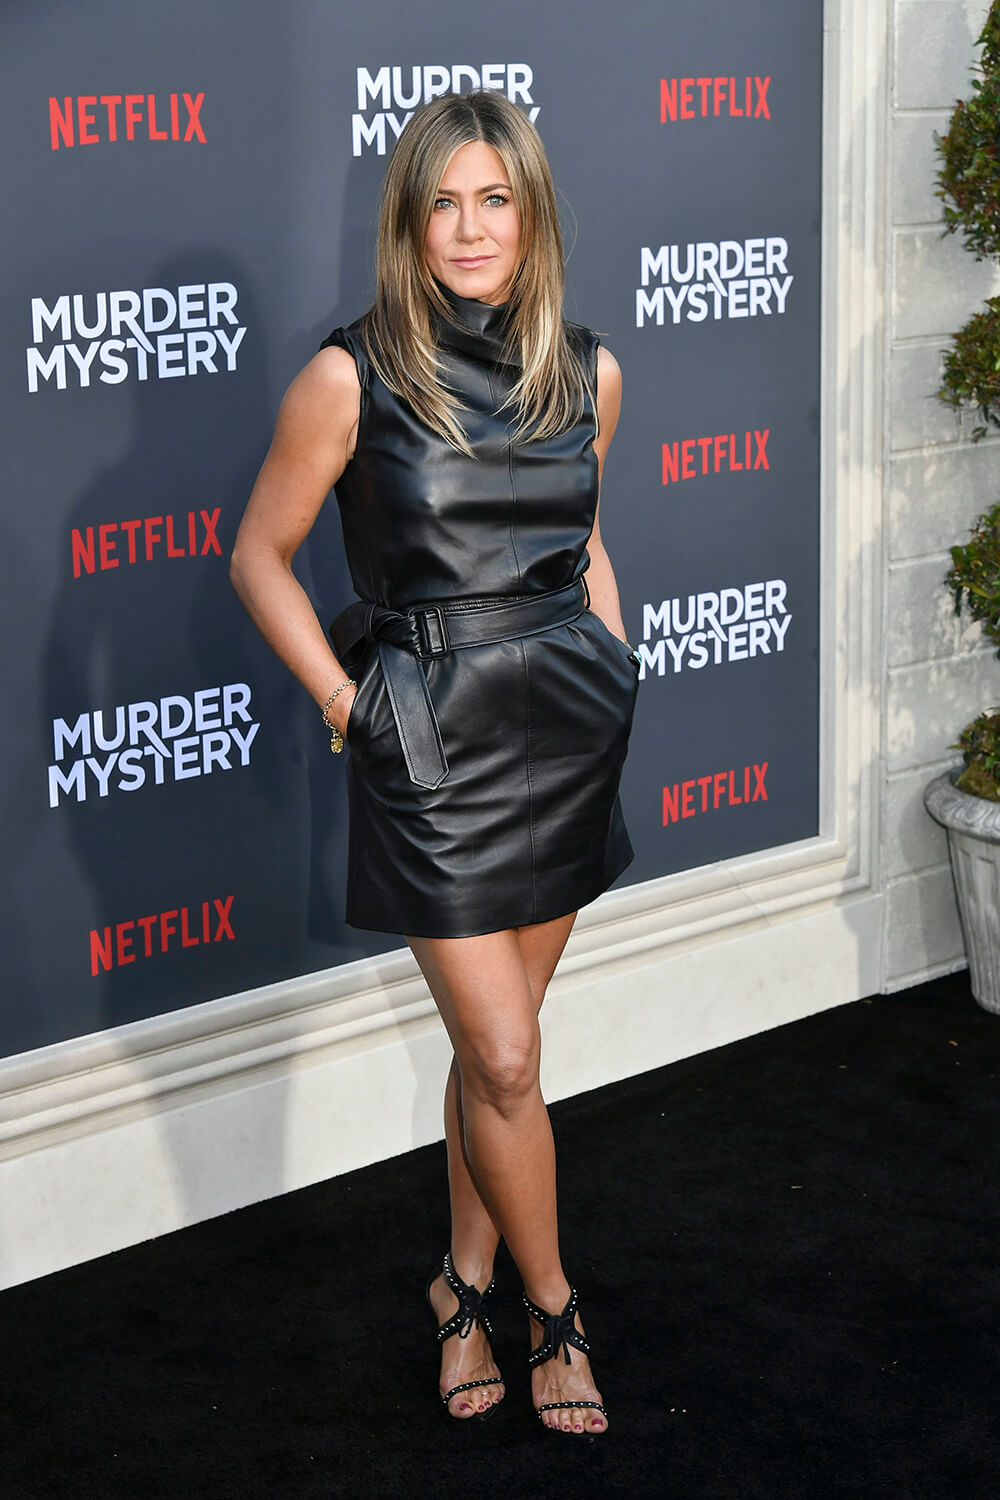 Jennifer Aniston attends Film Premiere Murder Mystery